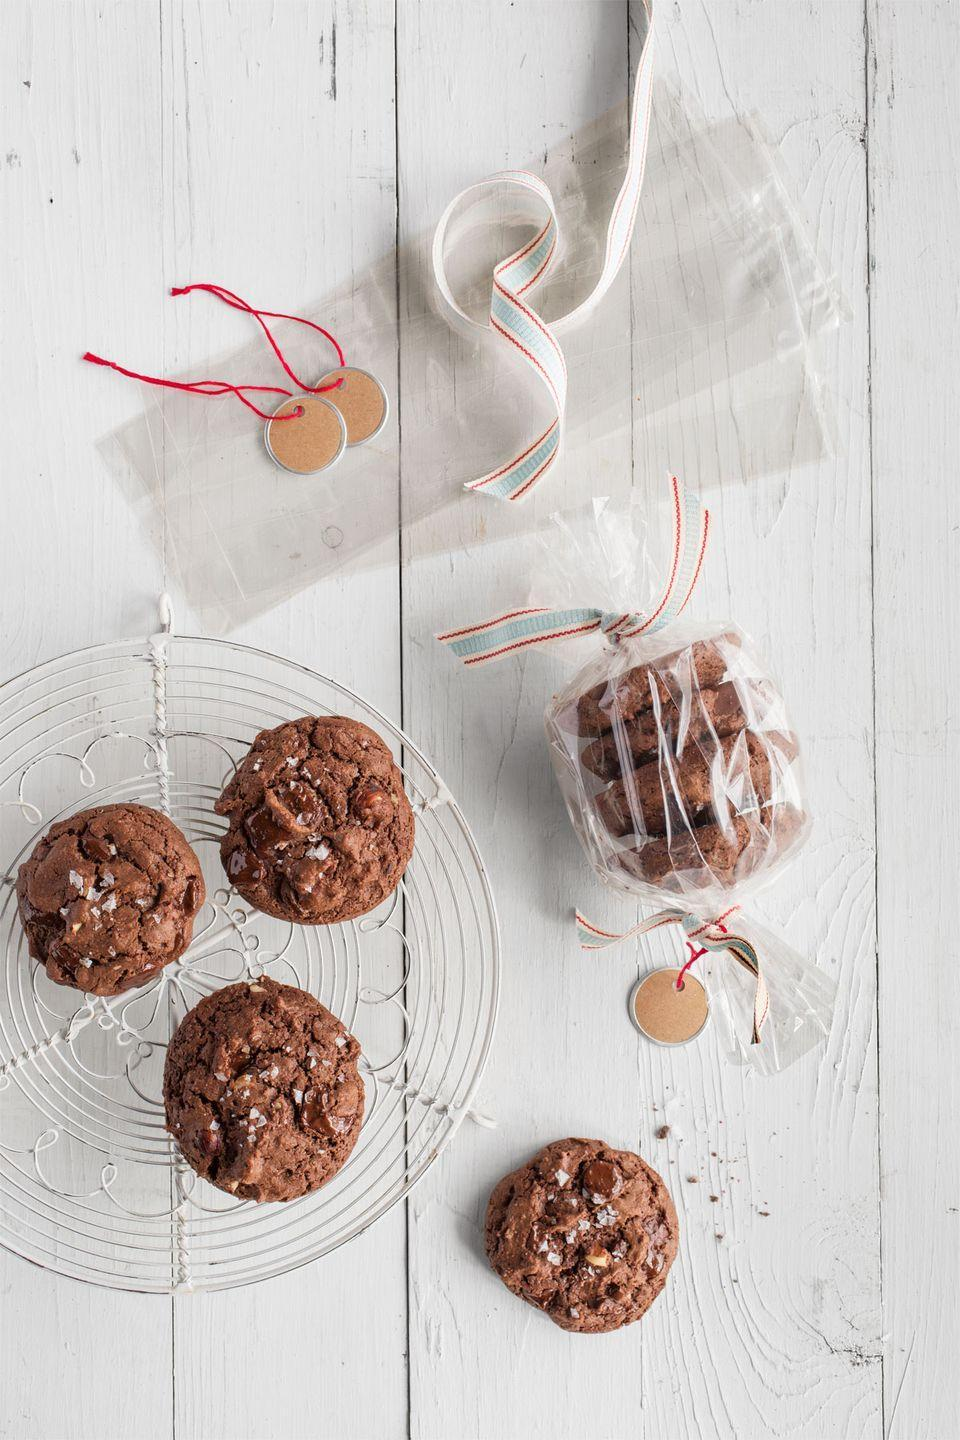 "<p>Here's something for the <a href=""https://www.countryliving.com/shopping/gifts/g4858/chocolate-gifts/"" rel=""nofollow noopener"" target=""_blank"" data-ylk=""slk:chocolate lovers"" class=""link rapid-noclick-resp"">chocolate lovers</a> on your list! When stacked inside a cellophane bag, these little morsels will make anyone's holiday extra sweet.</p><p><strong><a href=""https://www.countryliving.com/food-drinks/recipes/a36896/triple-chocolate-hazelnut-cookies/"" rel=""nofollow noopener"" target=""_blank"" data-ylk=""slk:Get the recipe"" class=""link rapid-noclick-resp"">Get the recipe</a>.</strong><strong><br></strong></p><p><strong><strong><a class=""link rapid-noclick-resp"" href=""https://www.amazon.com/Resealable-Cellophane-Bakery-Candle-UNIQUEPACKING/dp/B018HFT6TK/?tag=syn-yahoo-20&ascsubtag=%5Bartid%7C10050.g.1059%5Bsrc%7Cyahoo-us"" rel=""nofollow noopener"" target=""_blank"" data-ylk=""slk:SHOP CELLOPHANE BAGS"">SHOP CELLOPHANE BAGS</a></strong><br></strong></p>"